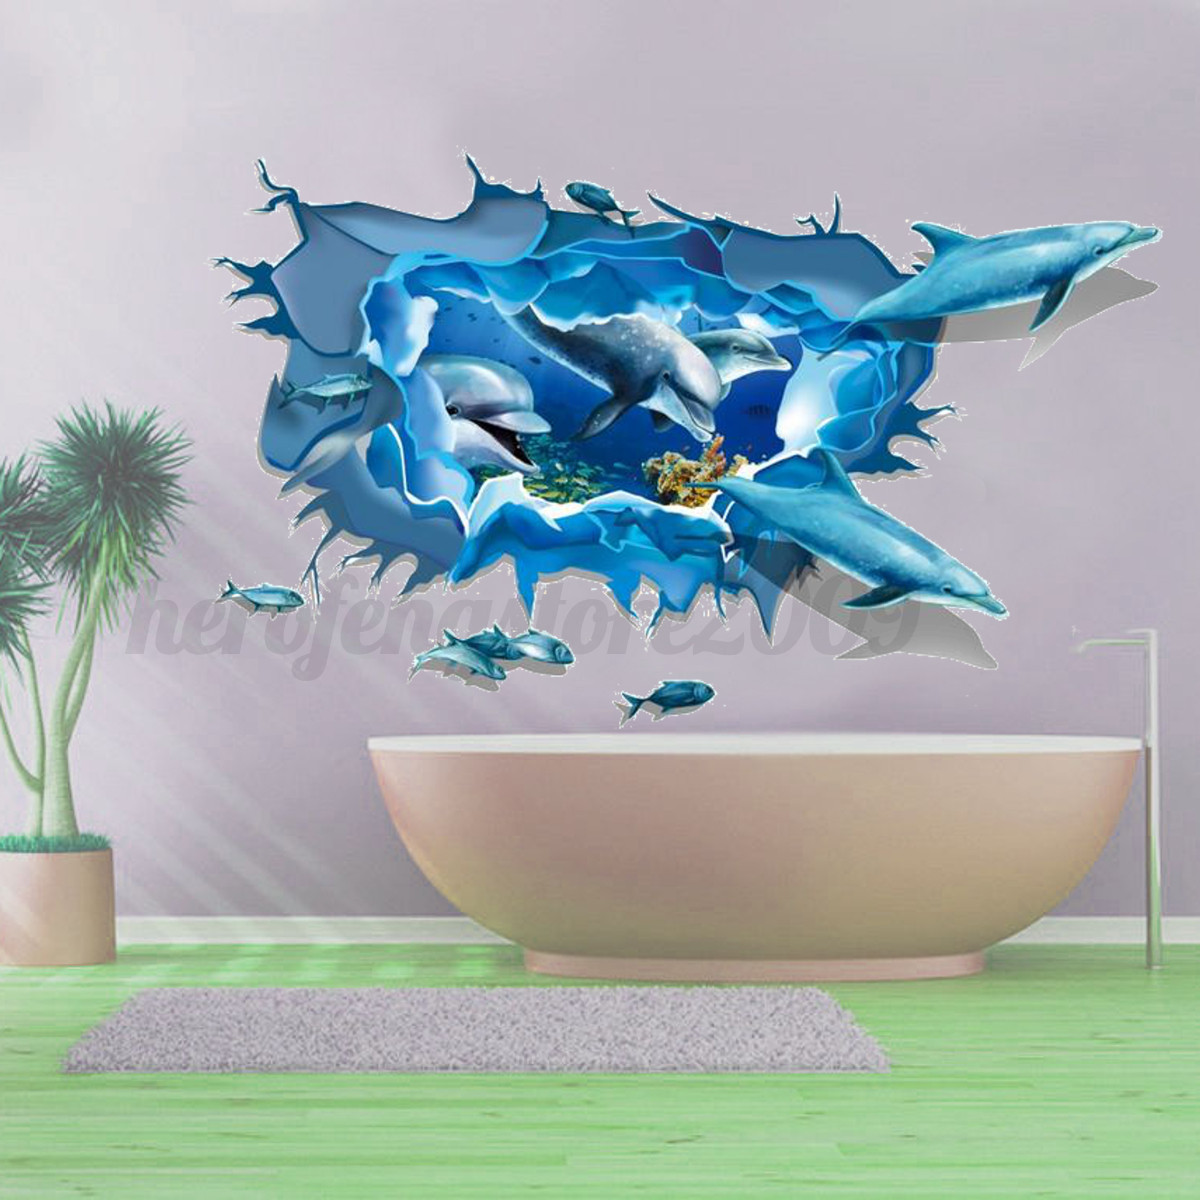 3d ocean dolphin kid bedroom removable wall sticker mural for Dolphin mural wallpaper